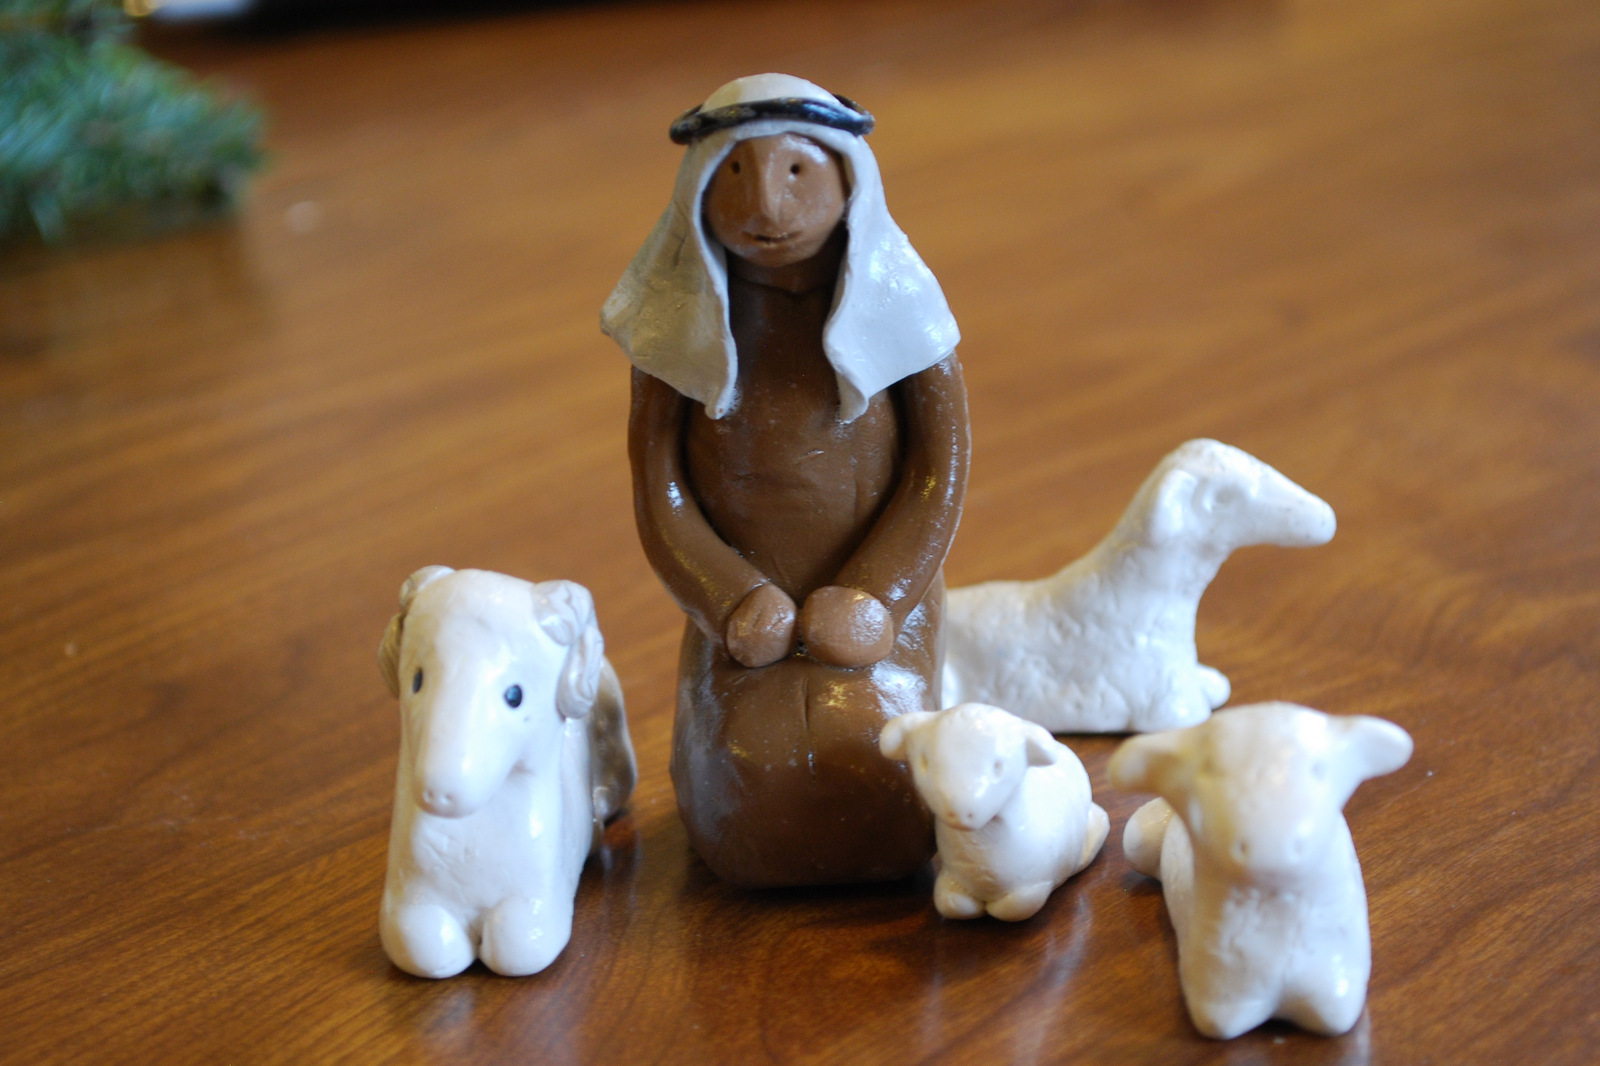 making clay figures